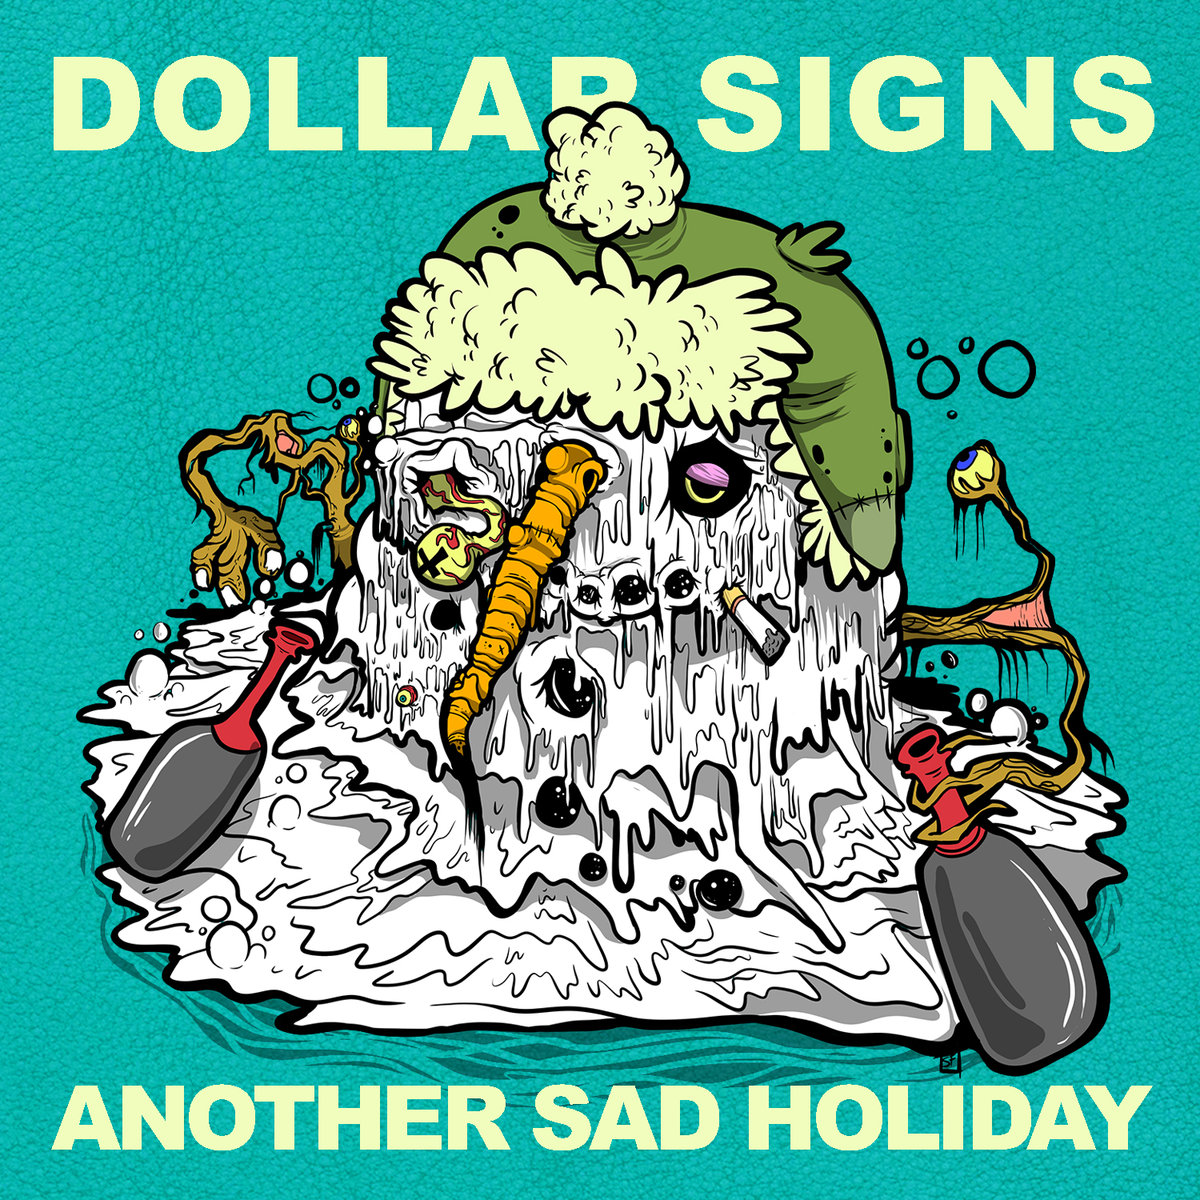 Dollar Signs - Another Sad Holiday